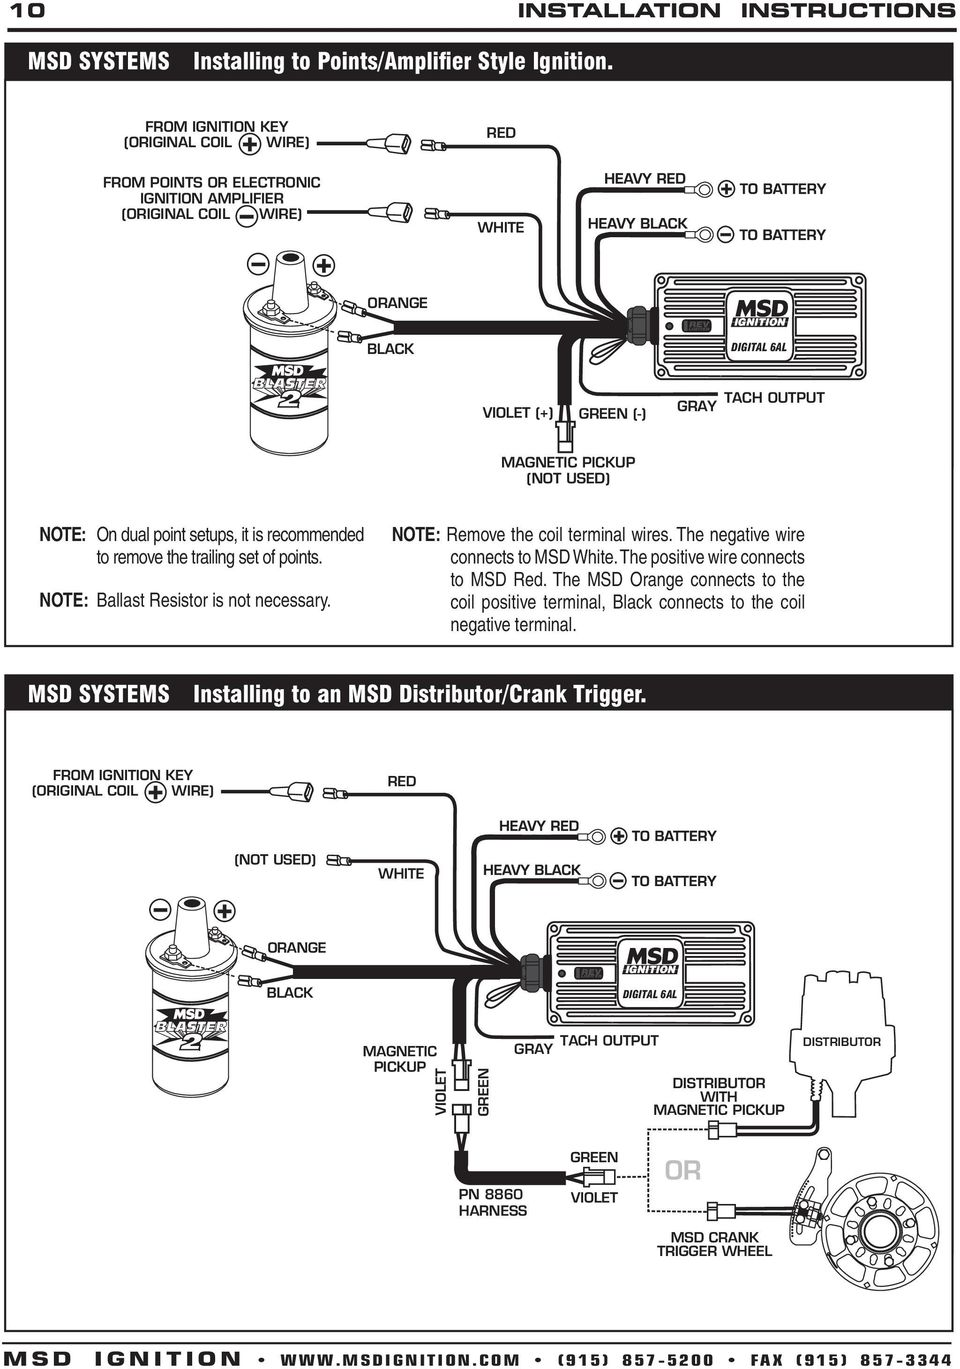 msd digital 6a and 6al ignition control 6a pn 6201 6al pn pdf points note ballast resistor is not necessary note remove the coil terminal